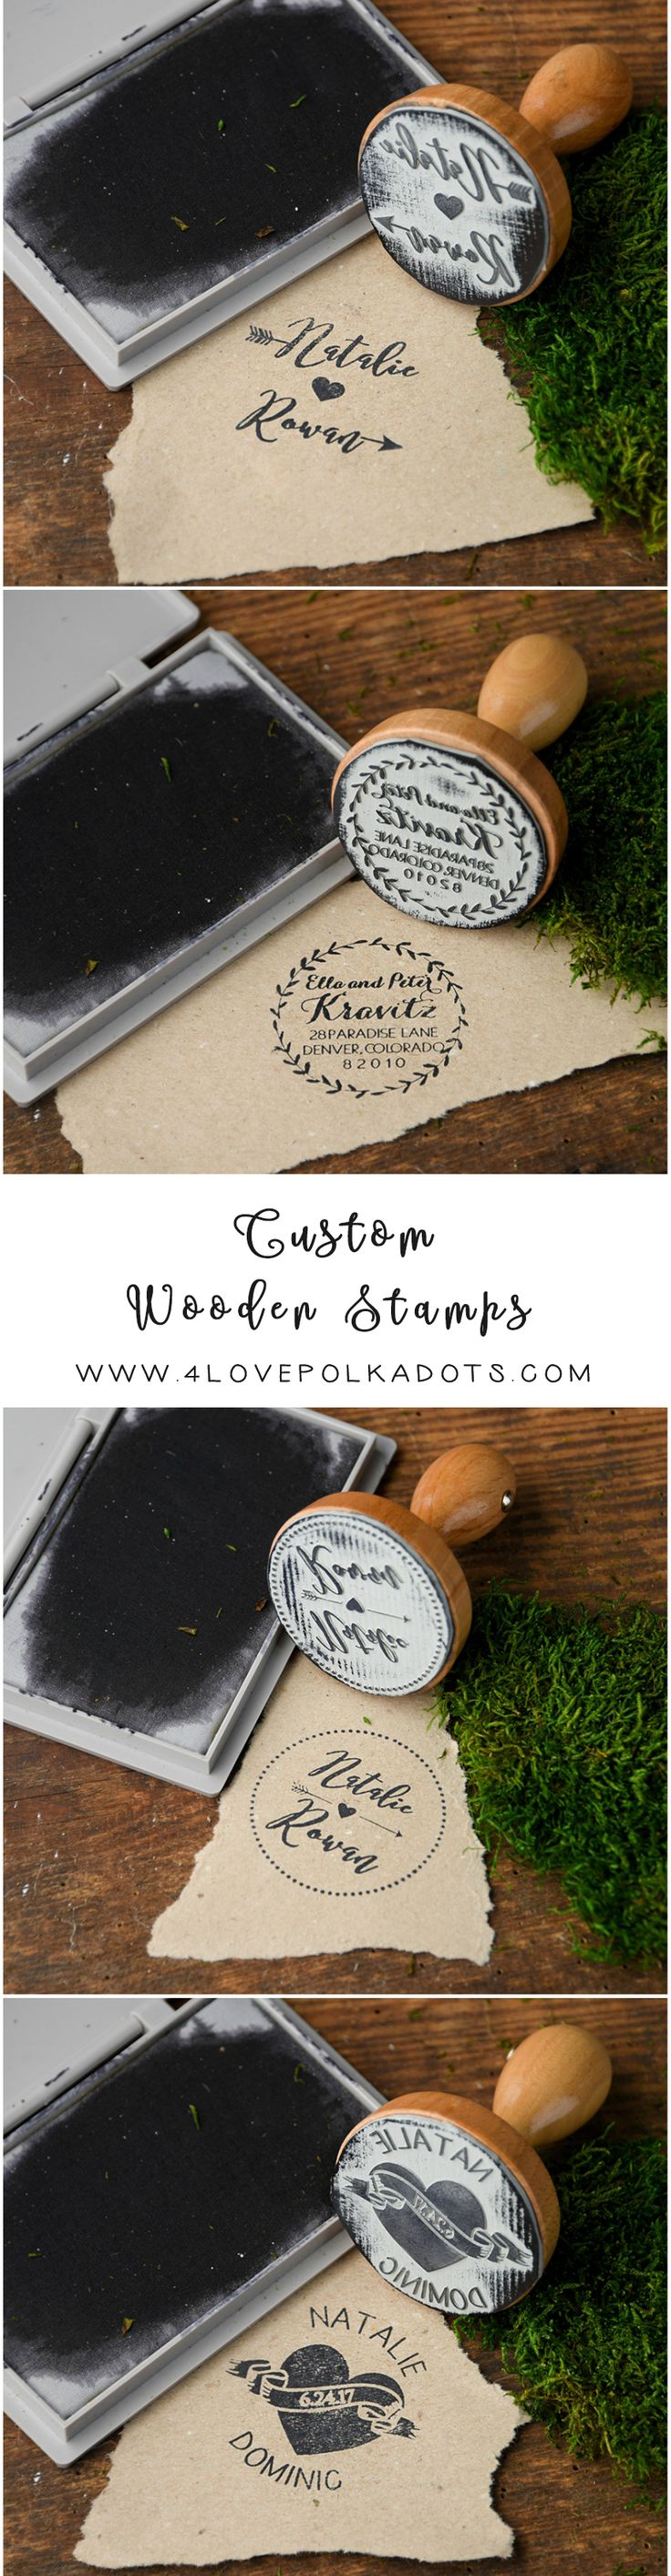 Custom Stamps for rustic country wedding